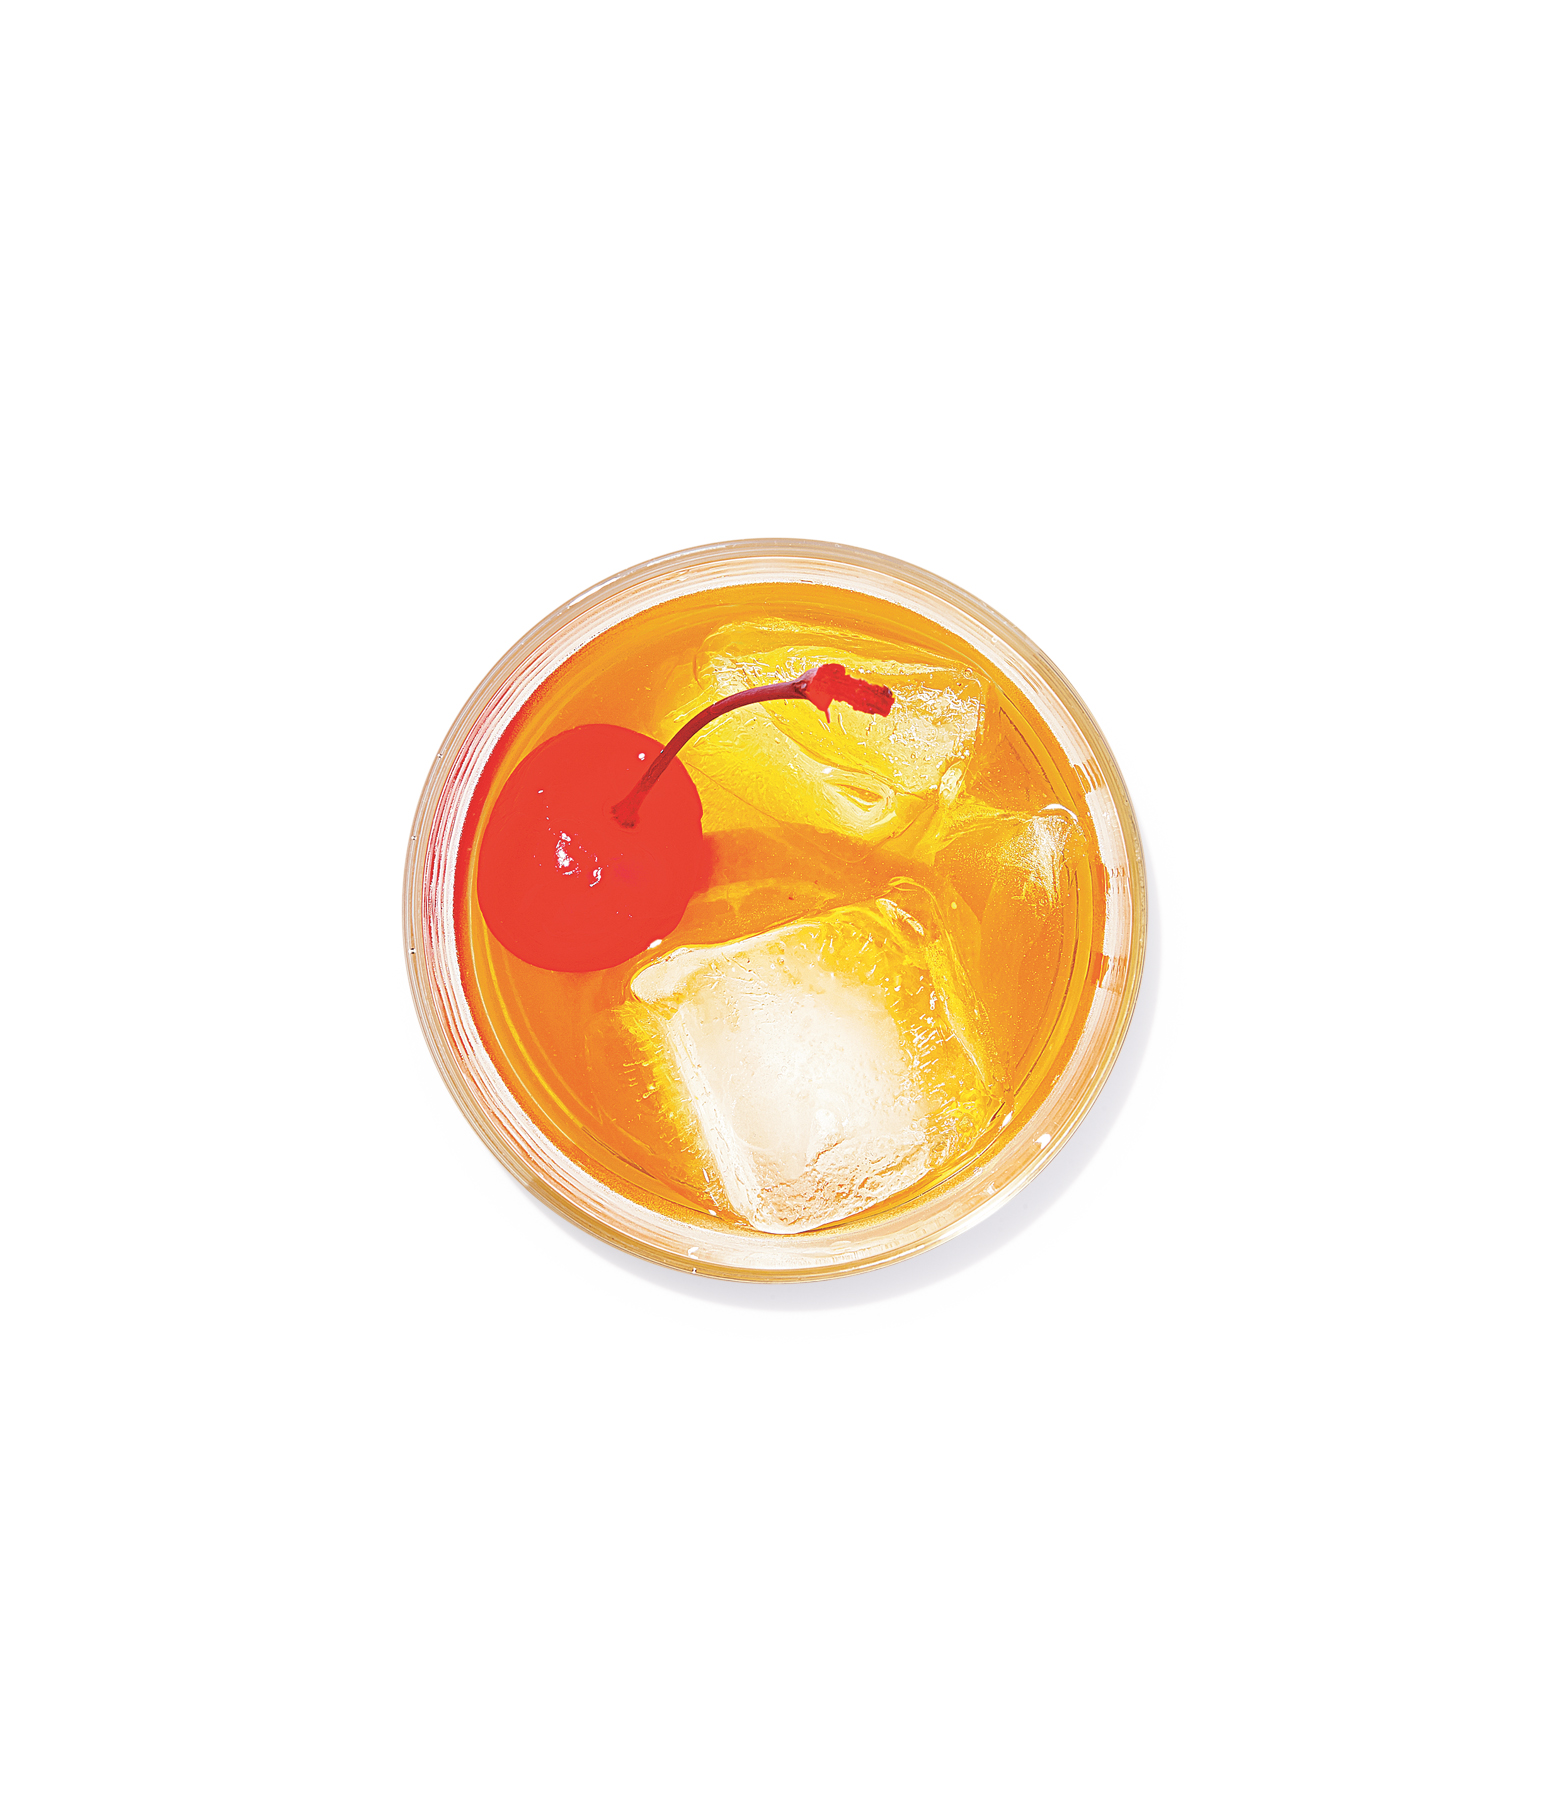 Clementine and Ginger Old Fashioned